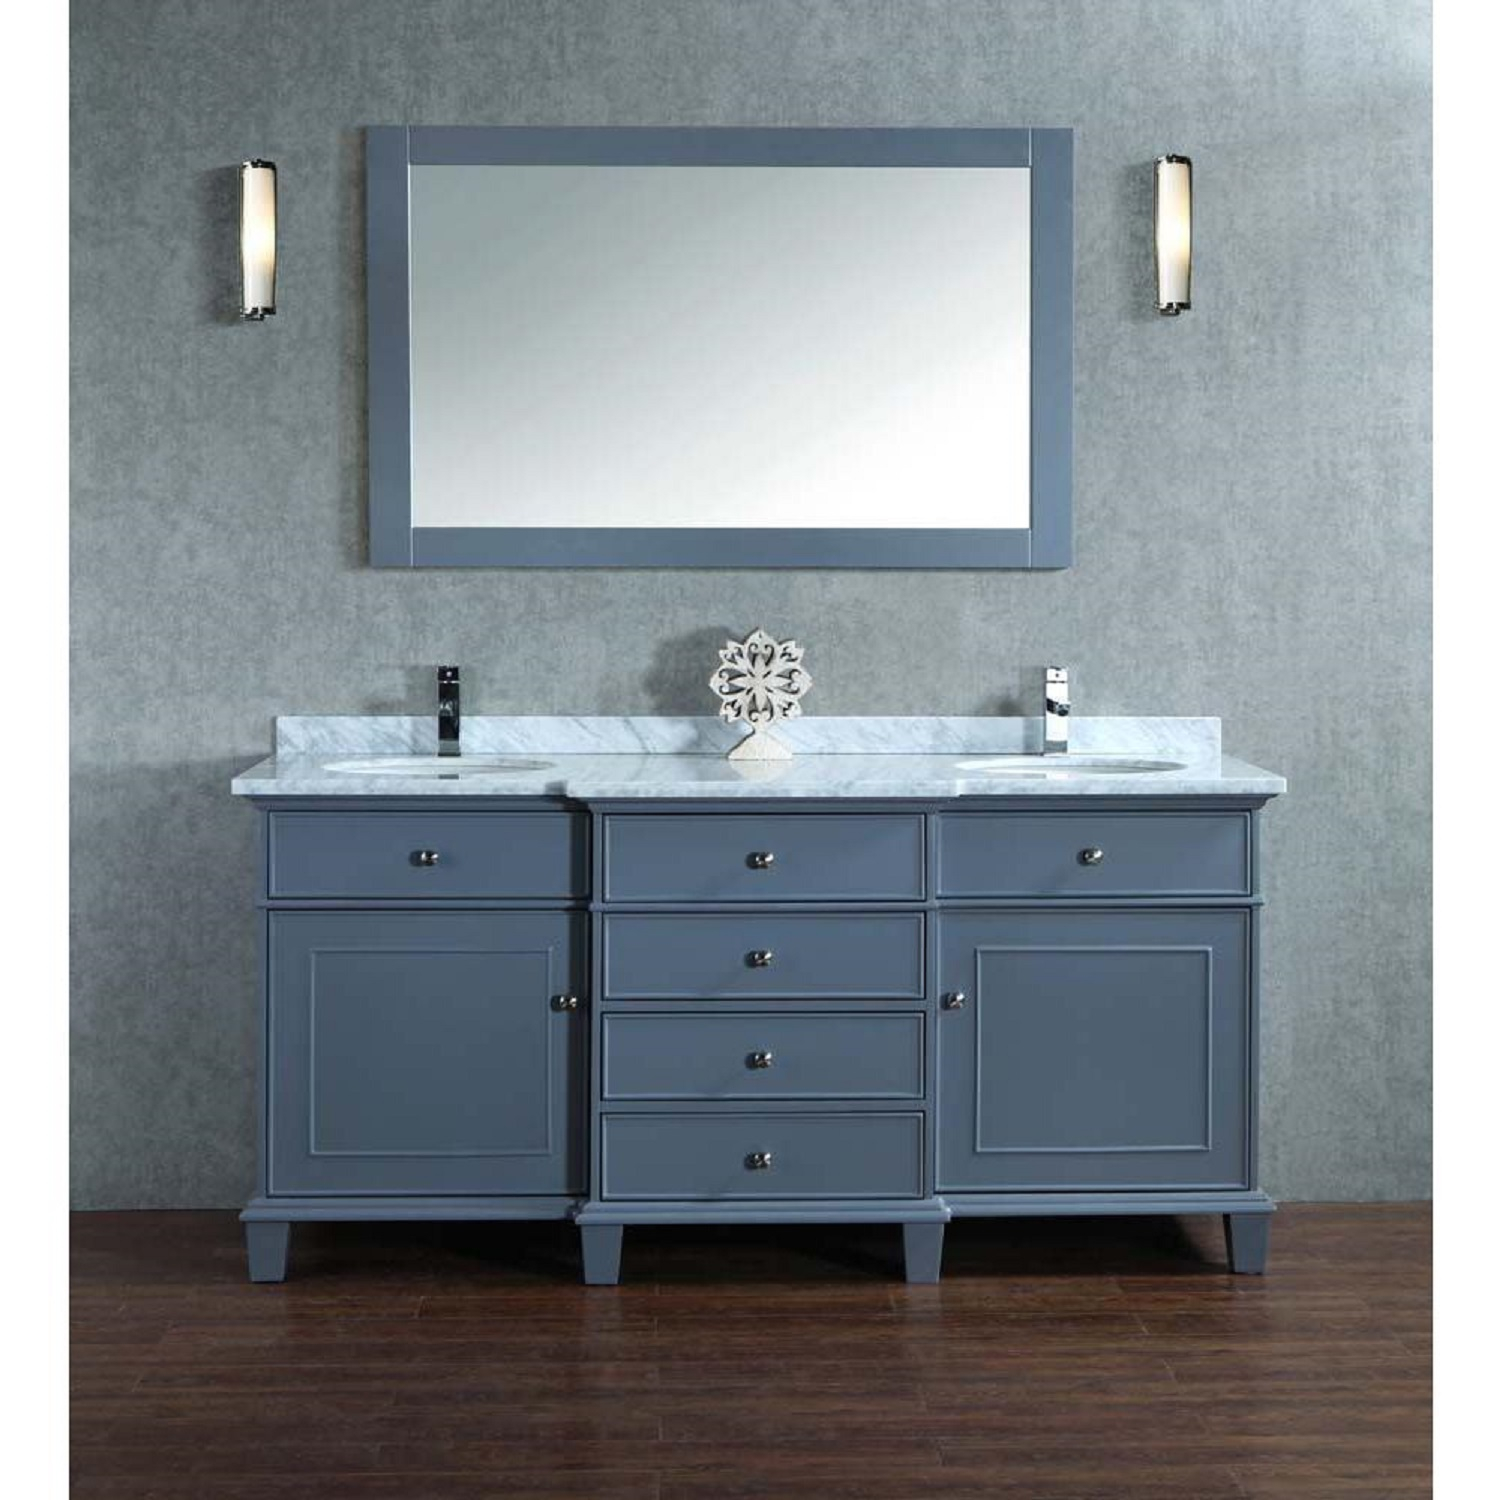 Fancy Hd 7000G 72 Cr A For Inch Vanity | Home And Interior pertaining to Unique Bathroom Vanities Double Sink 72